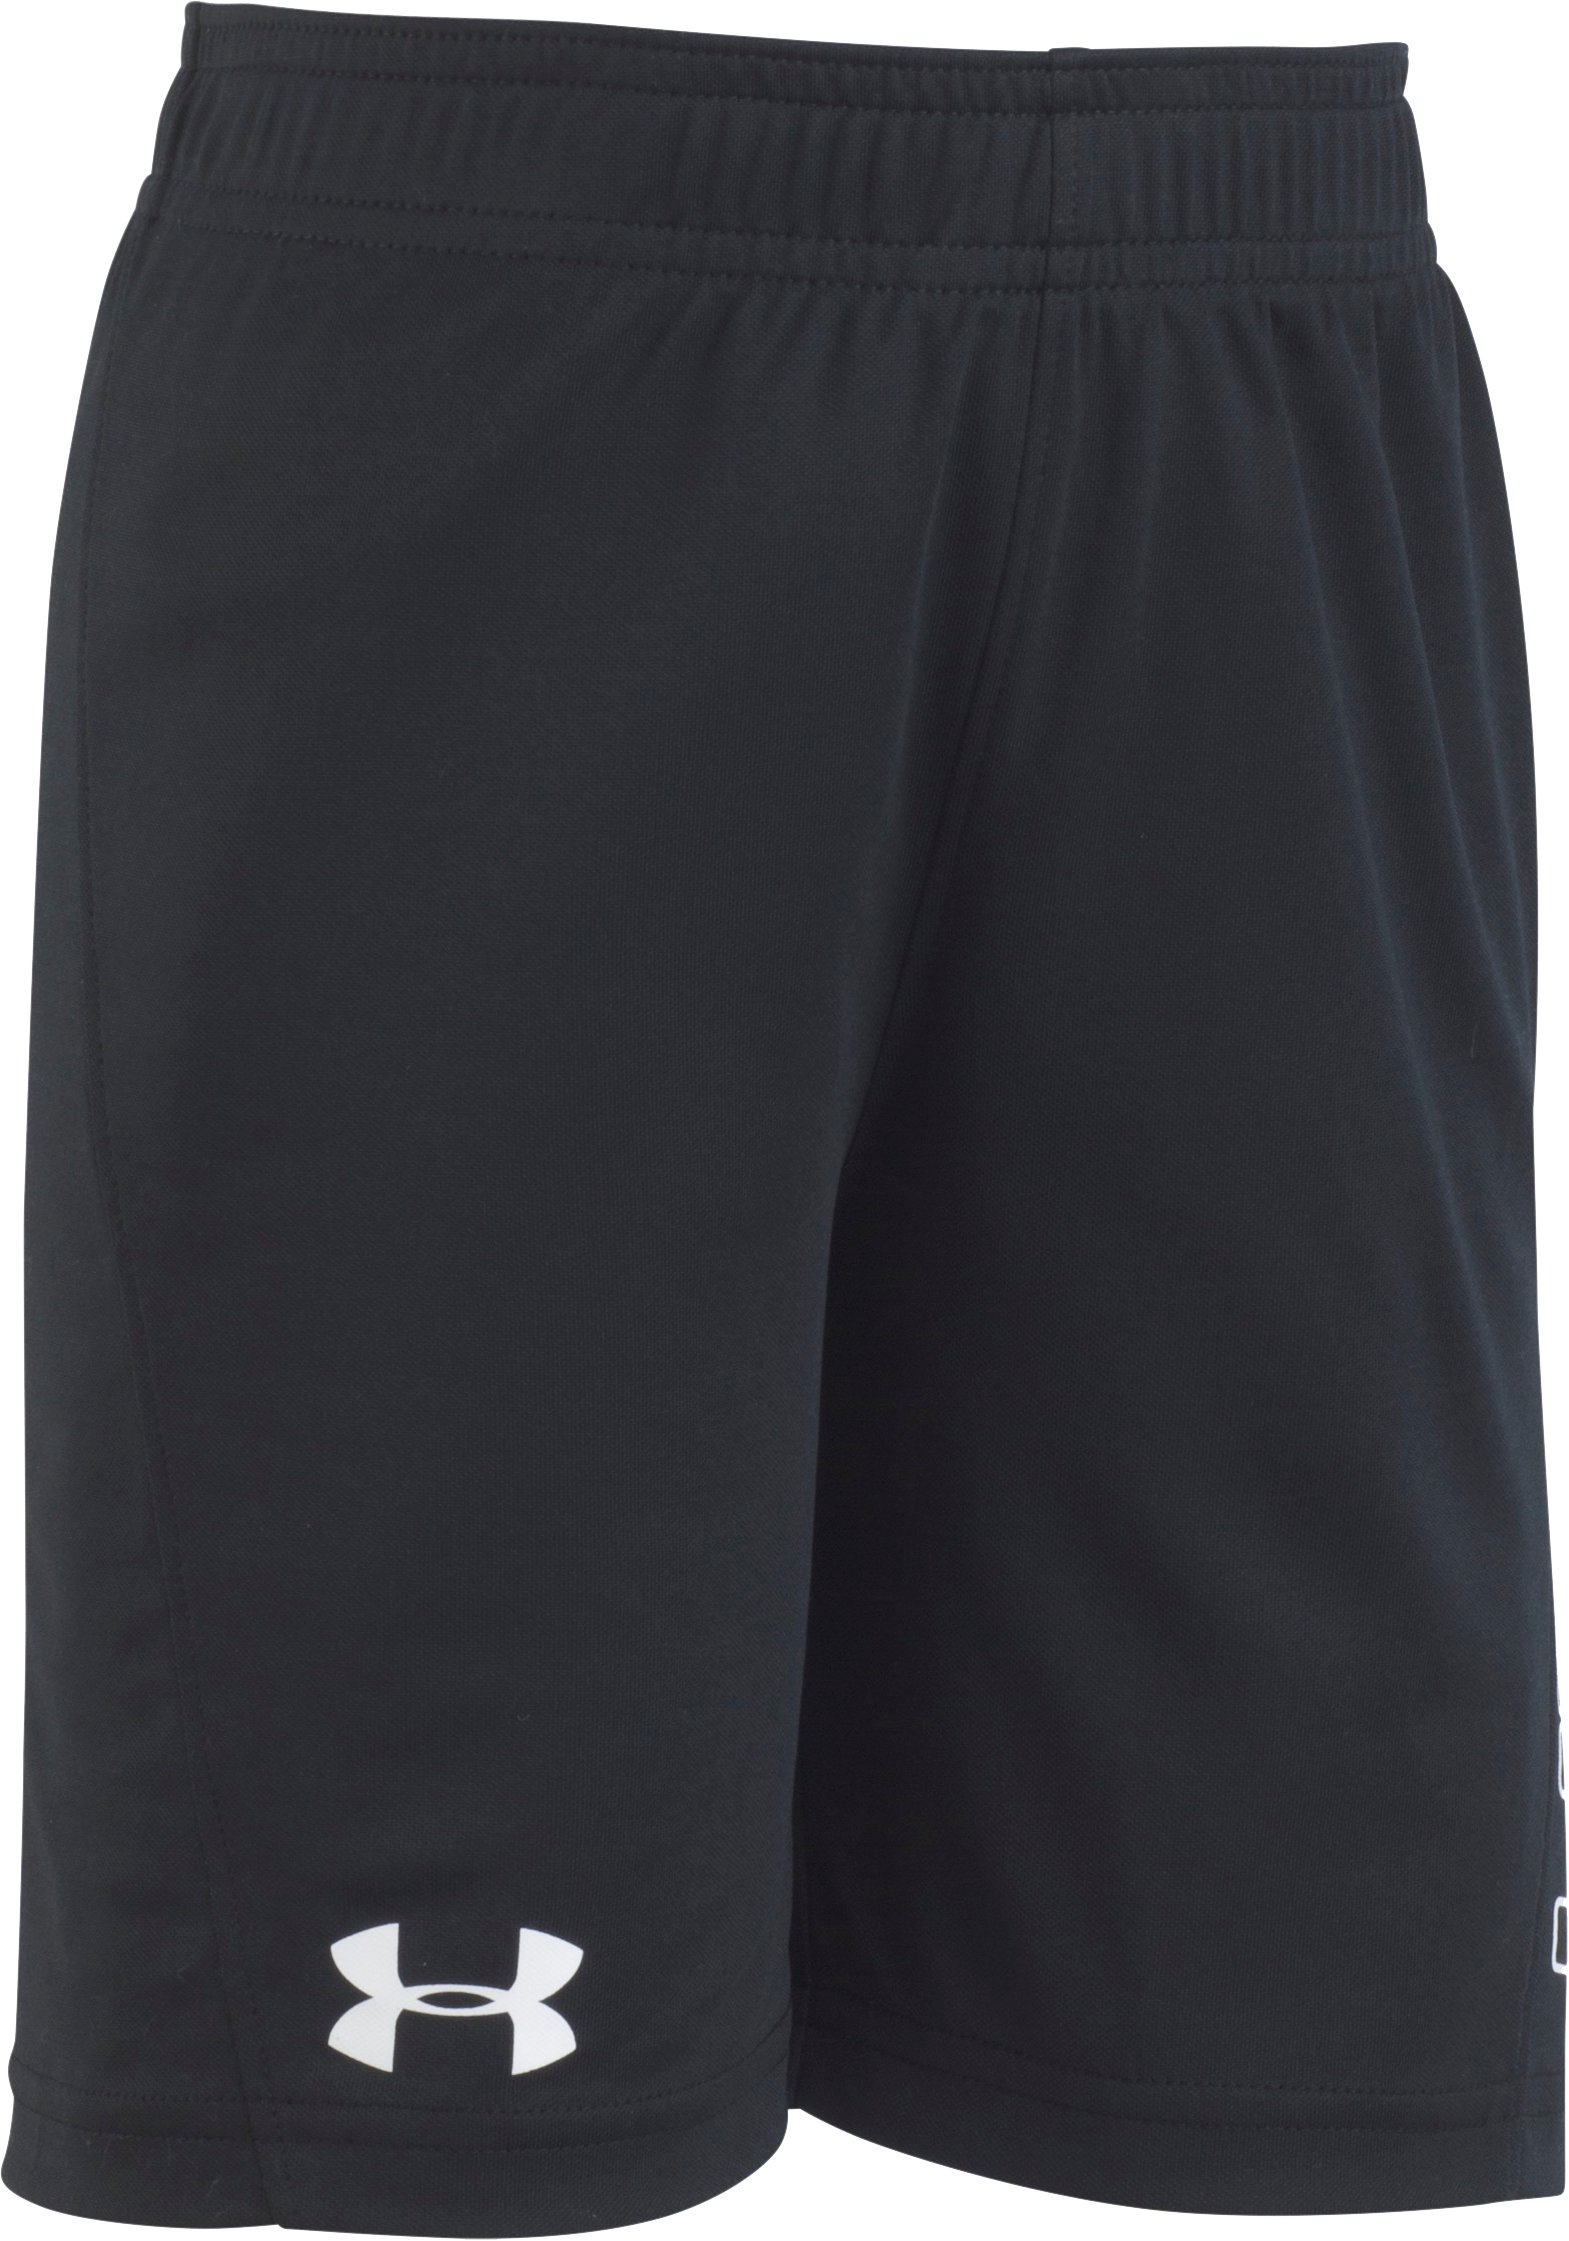 Kick Off Solid Short 12-24M, Black , zoomed